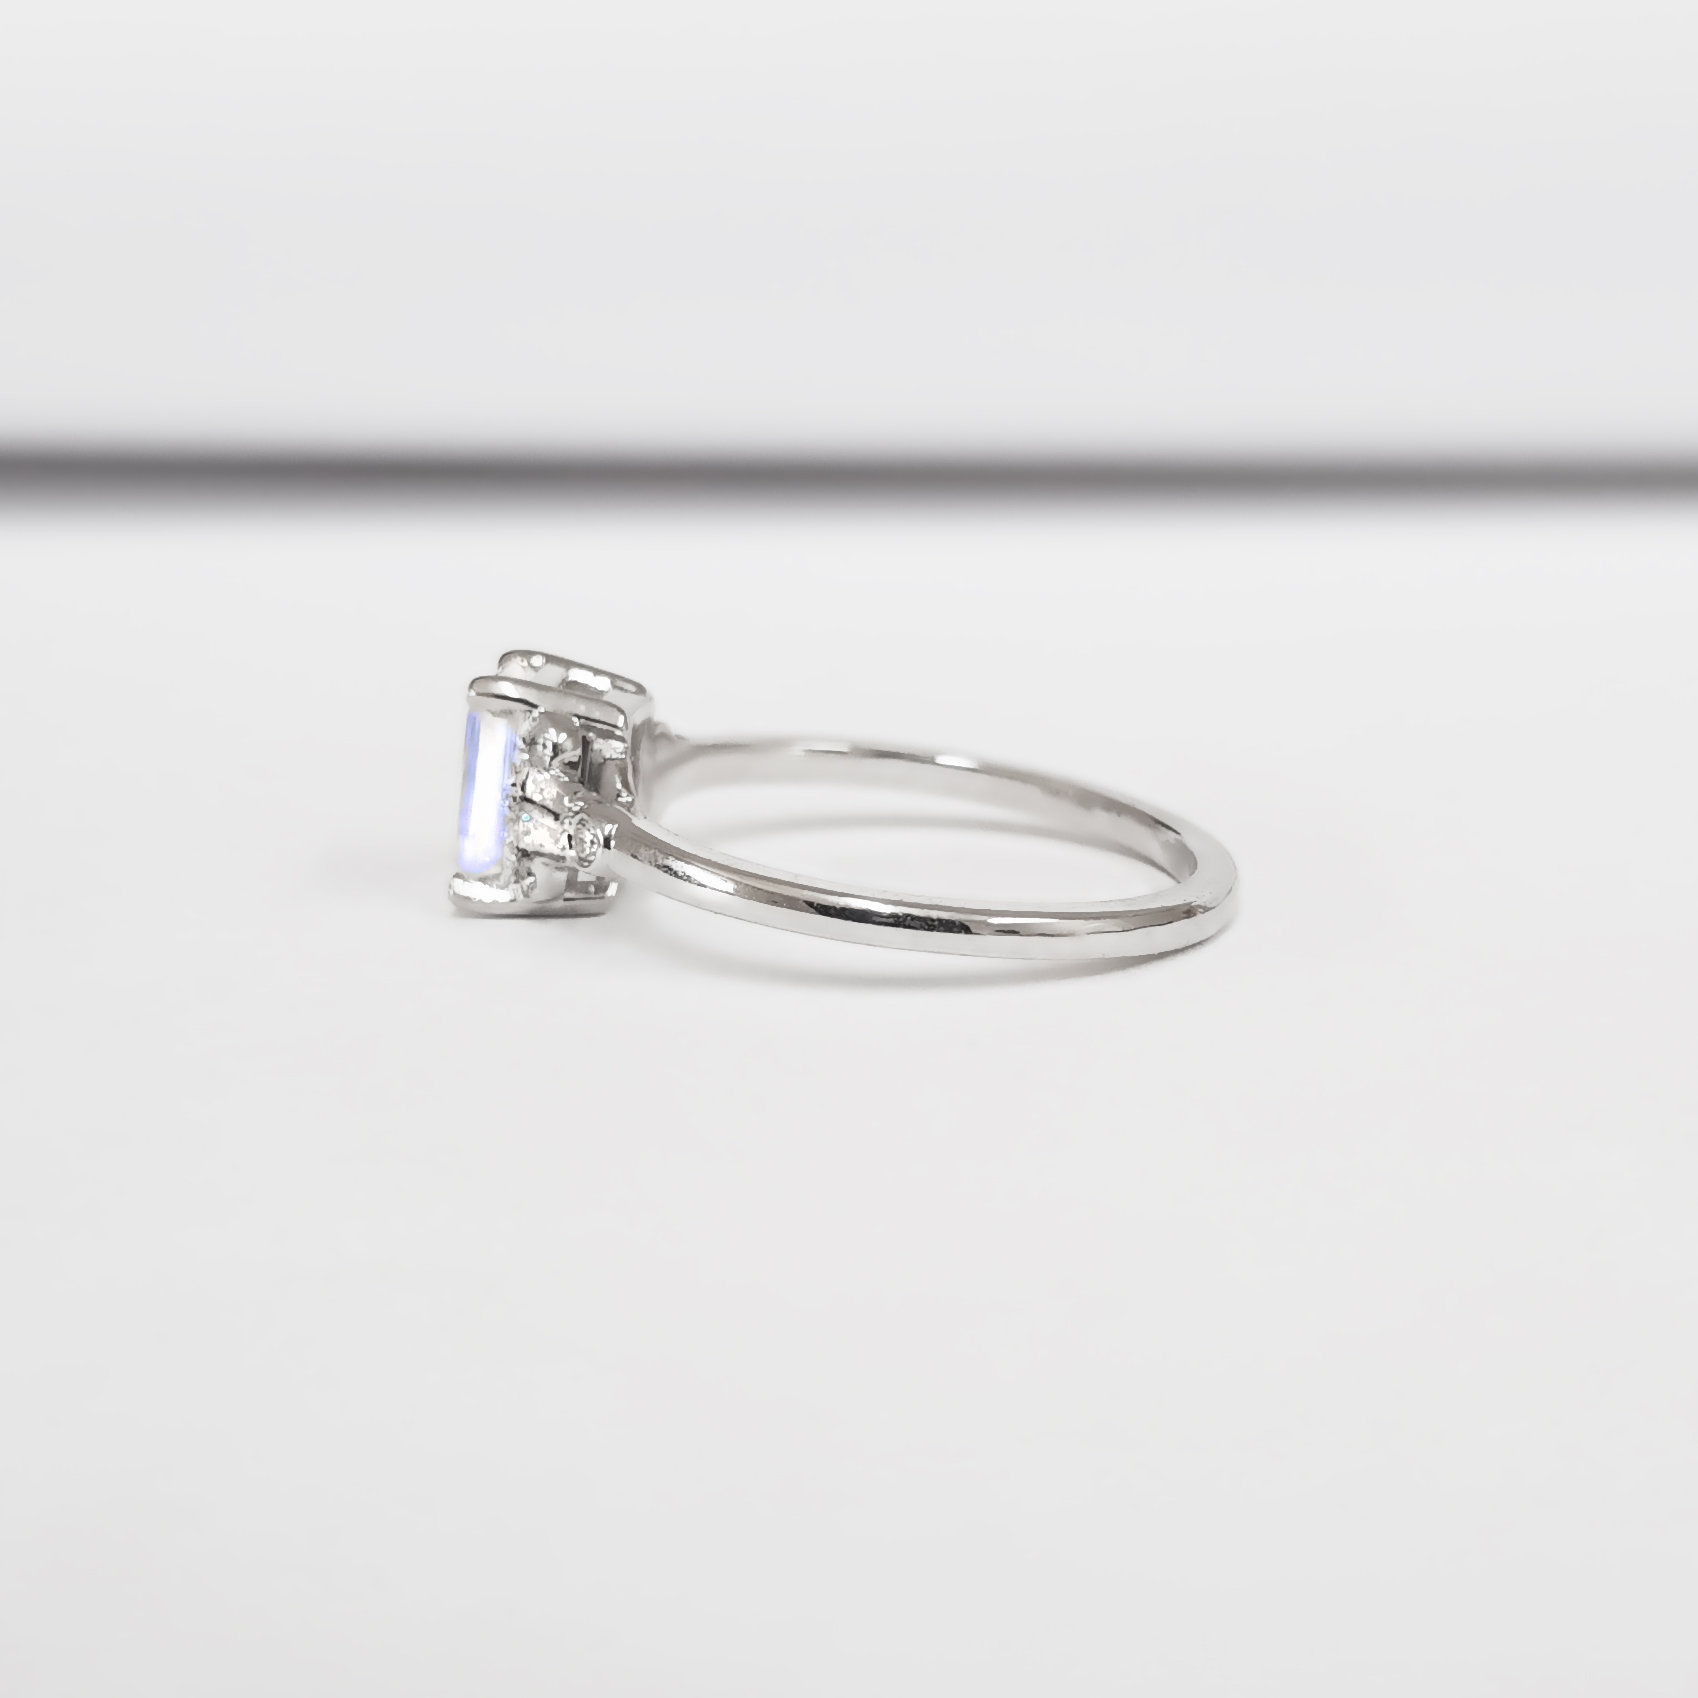 Moonstone And Diamond Emerald Cut Engagement Ring In White Rose Yellow Gold Or Platinum For Her Handmade Ring Uk Aardvark Jewellery